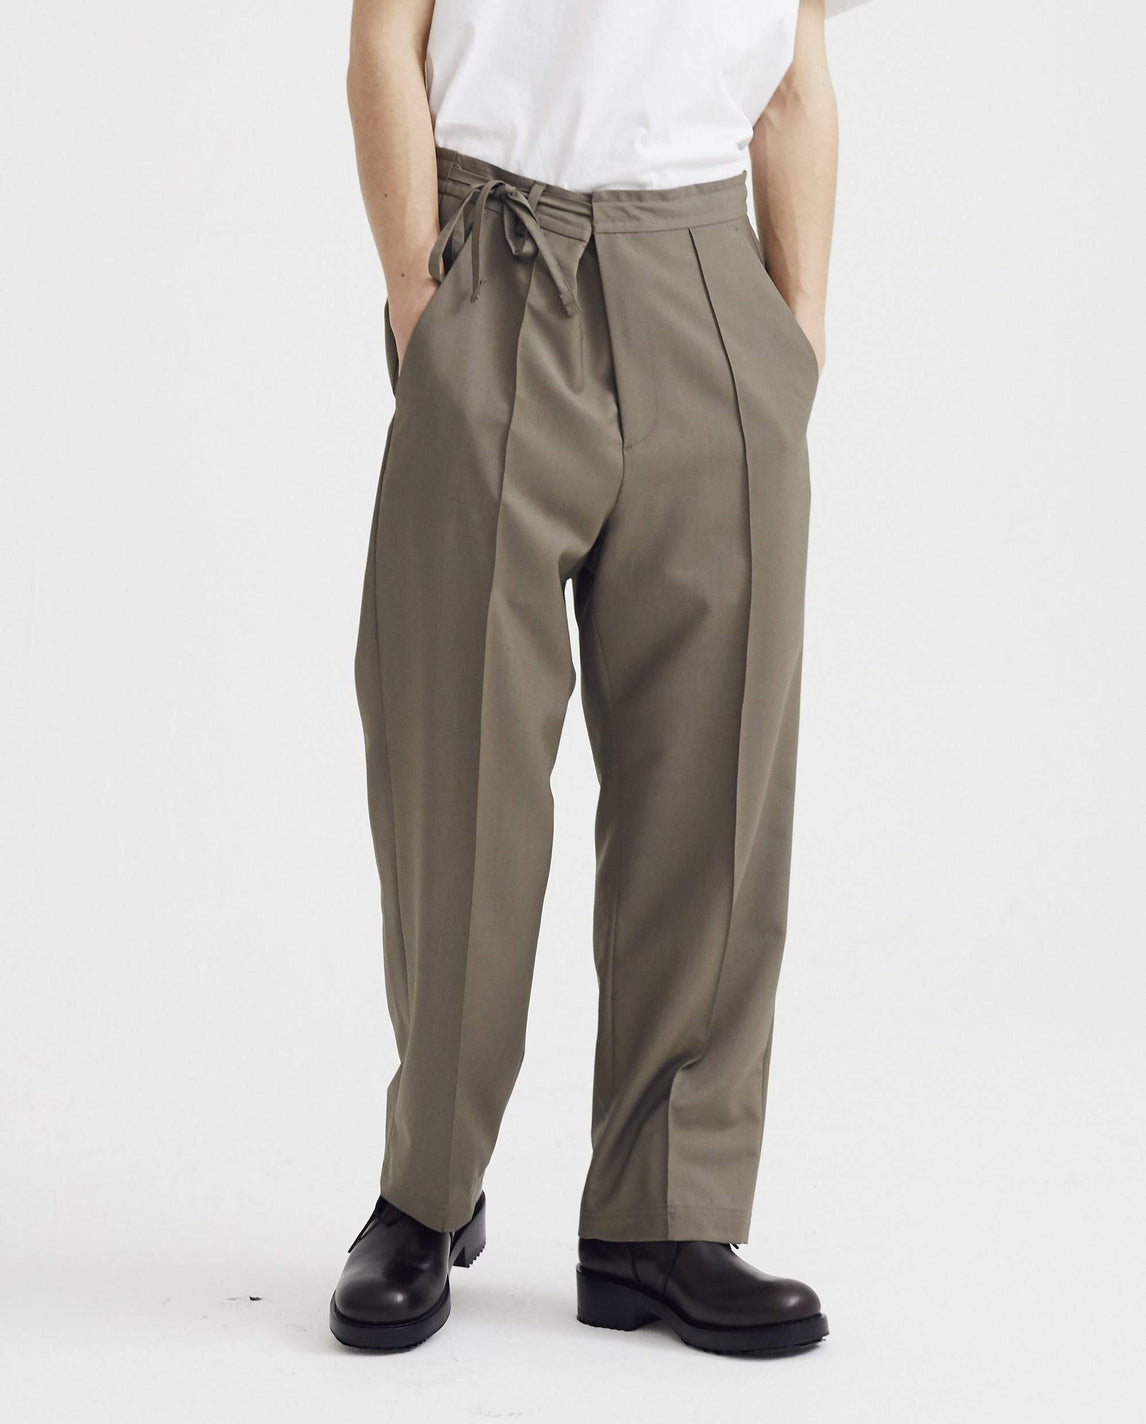 Pleated Trouser - Khaki MENS MAISON MARGIELA